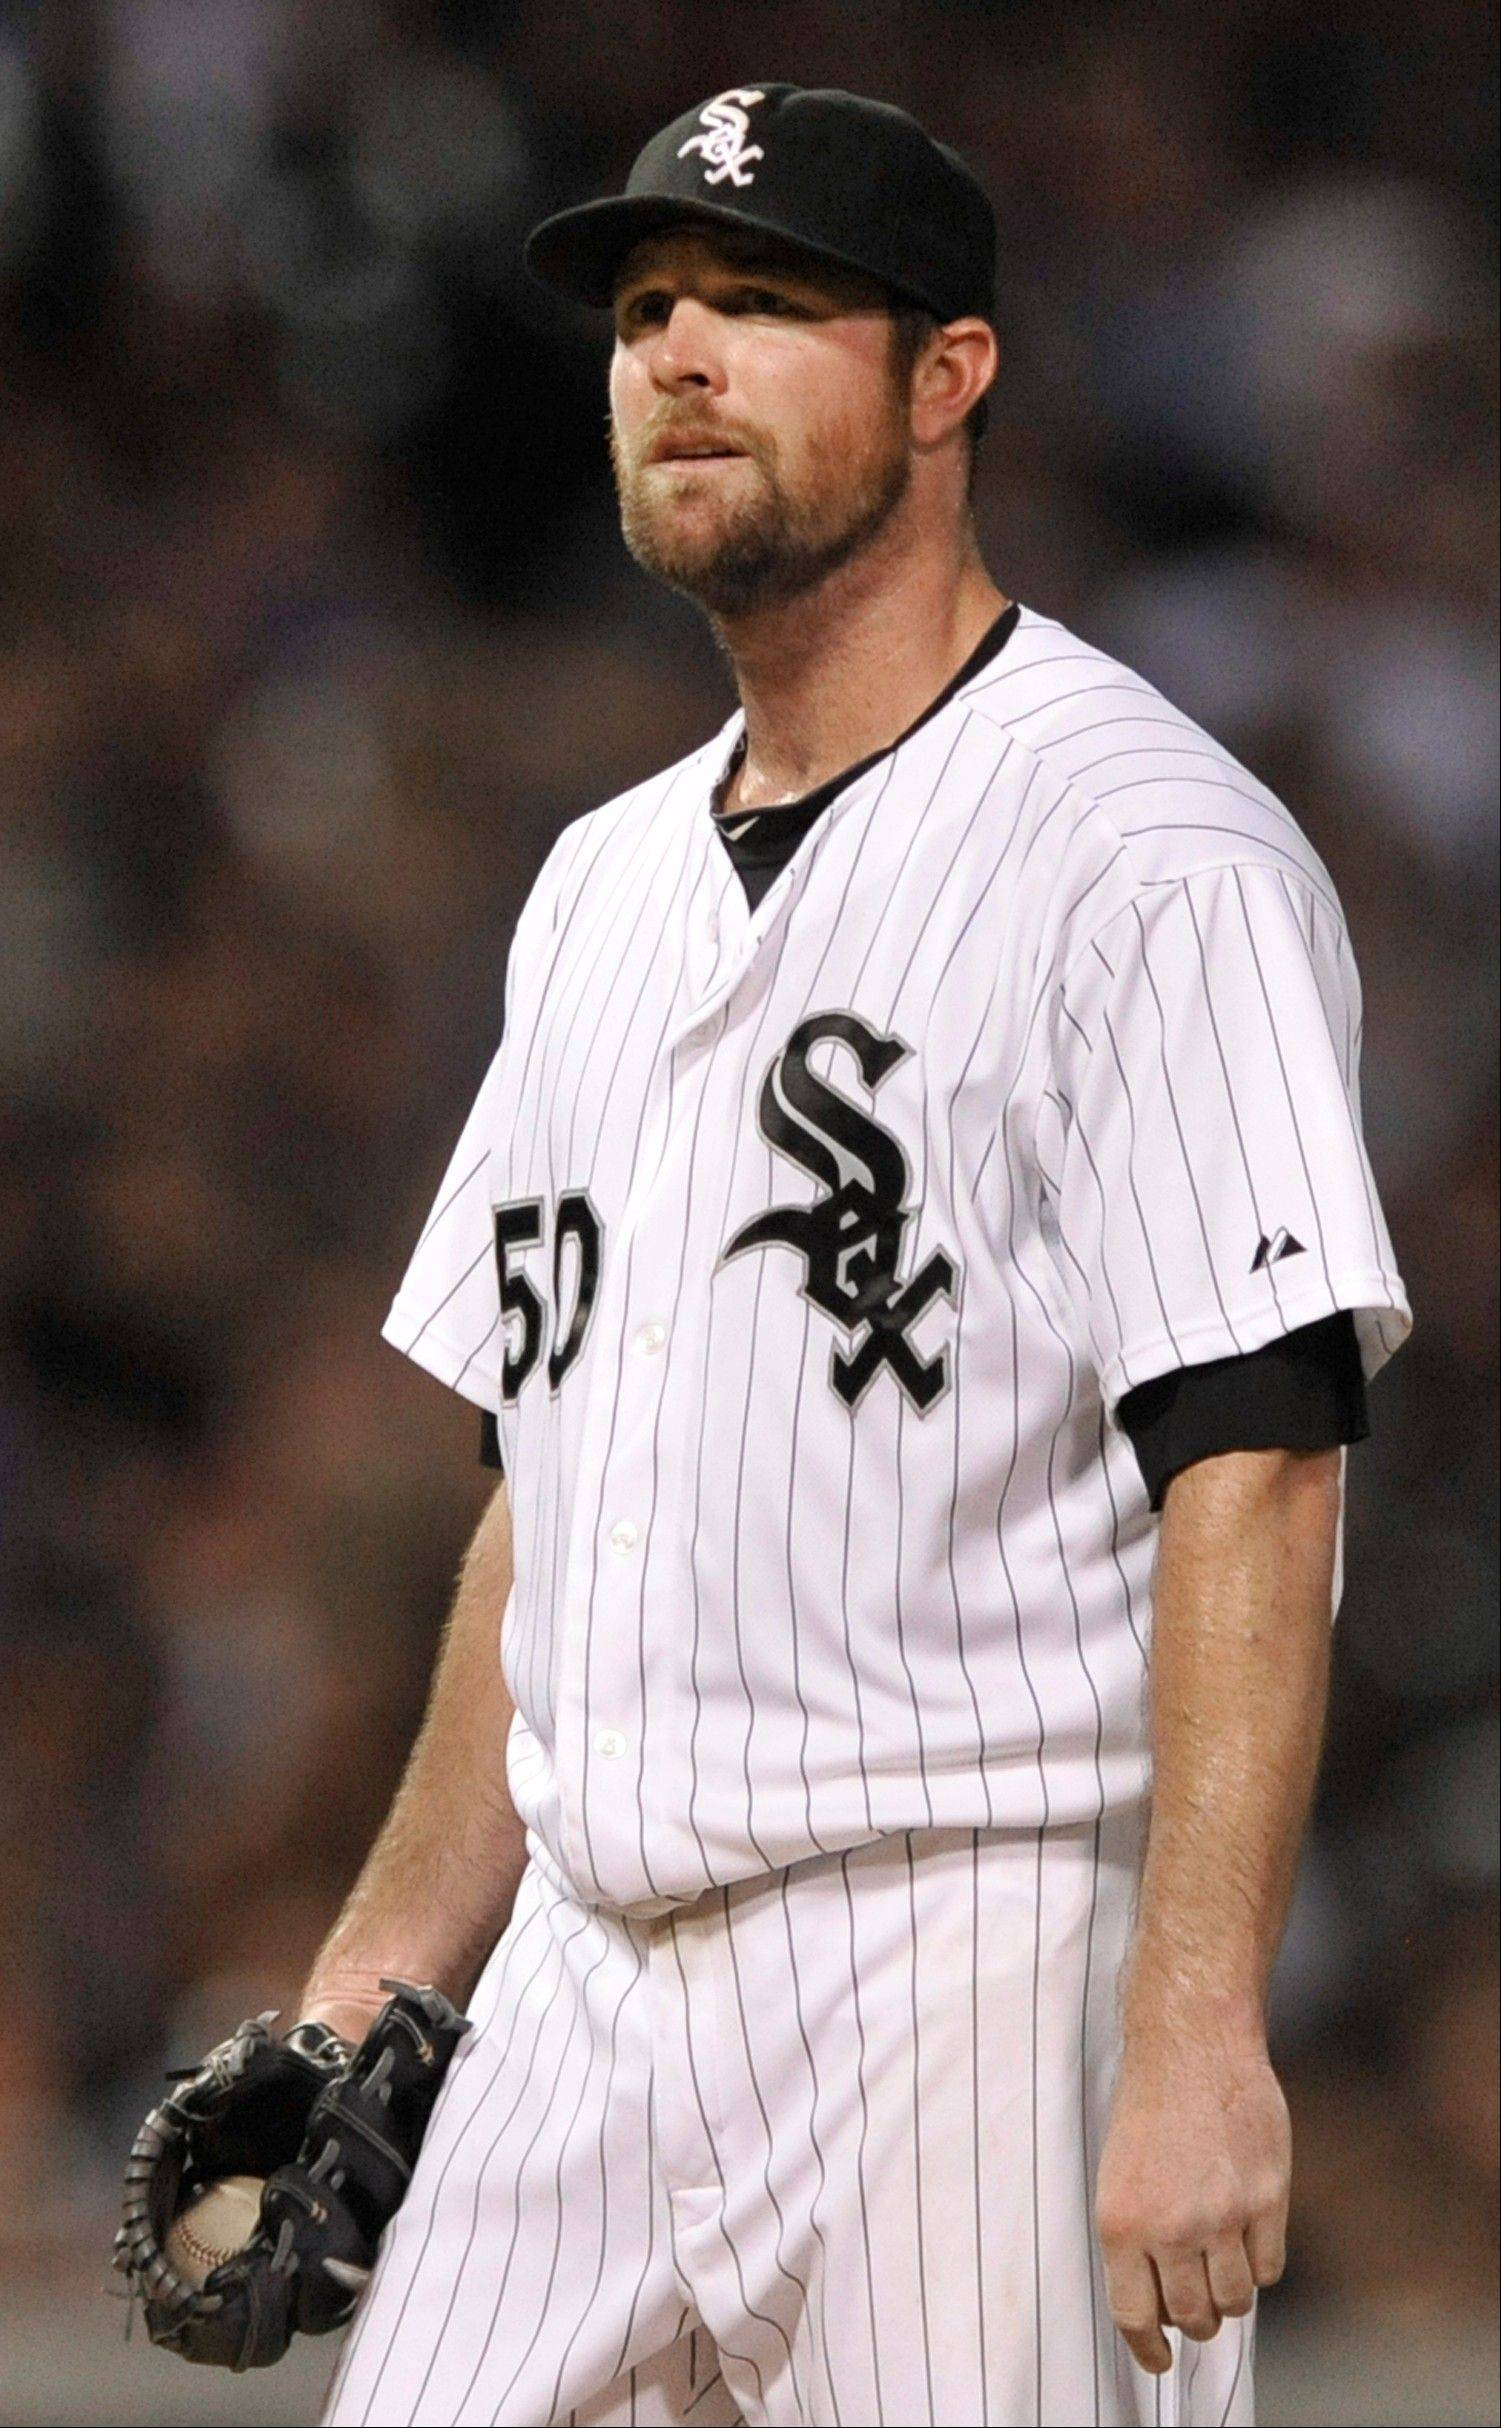 John Danks reacts to giving up a 3-run home run to Atlanta's Brian McCann during the sixth inning of the White Sox' loss at U.S. Cellular Field on Friday.